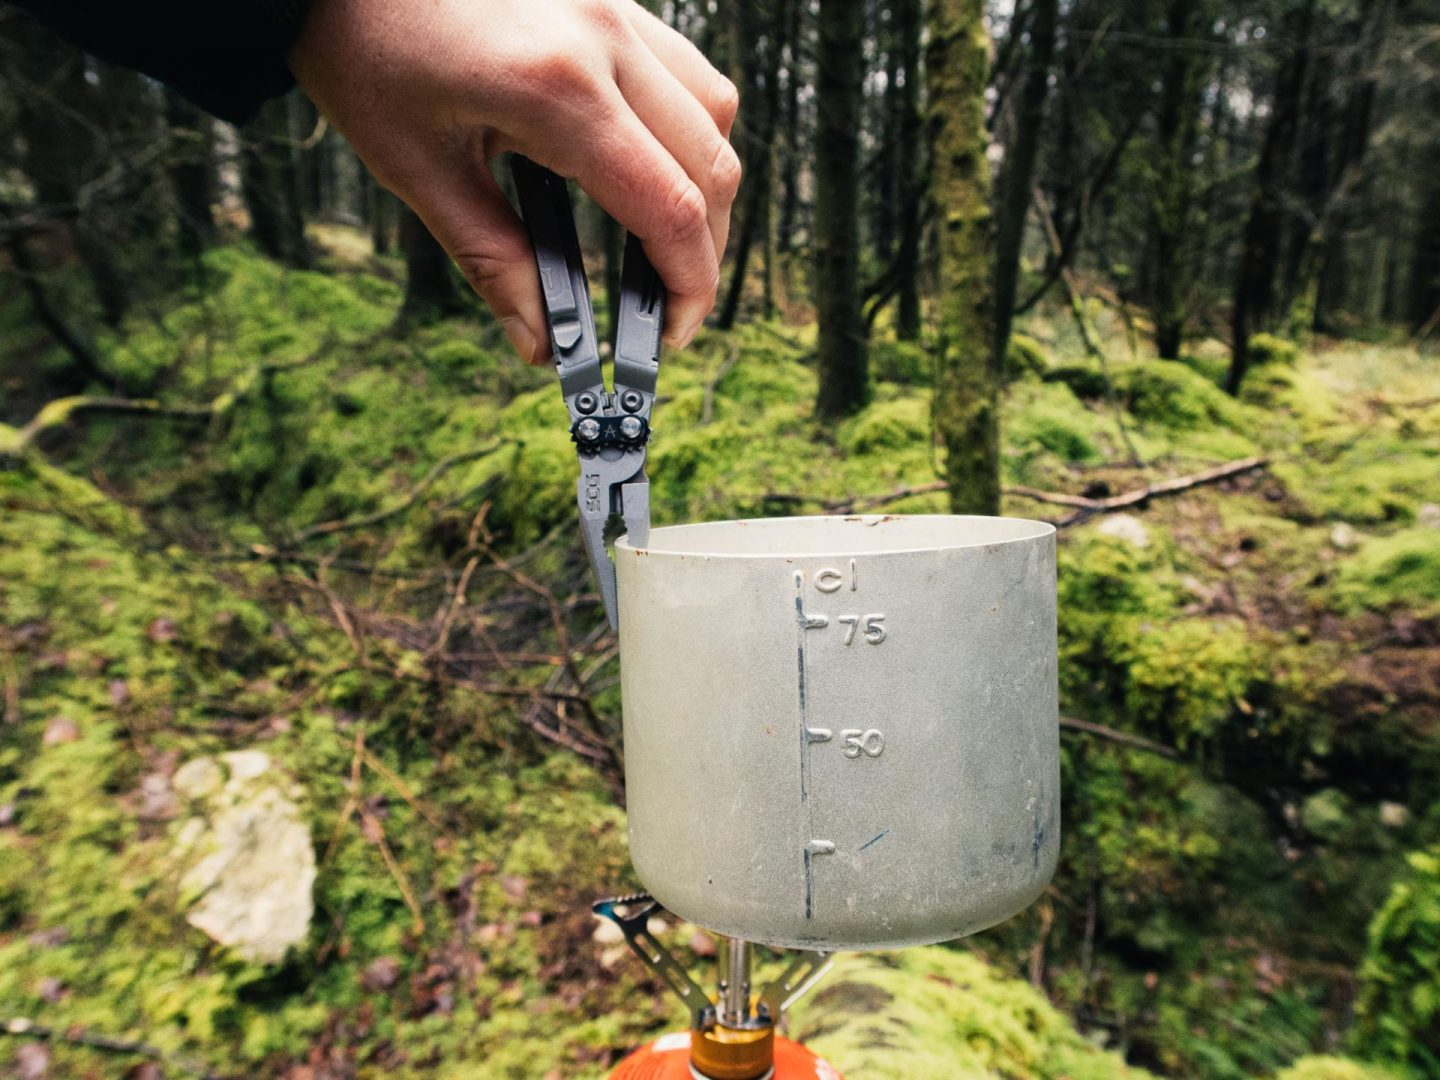 SOG PowerPint Review | Best Pocket Multi-Tool From SOG Knives 18 tool multi-tool perfect for camping and hiking